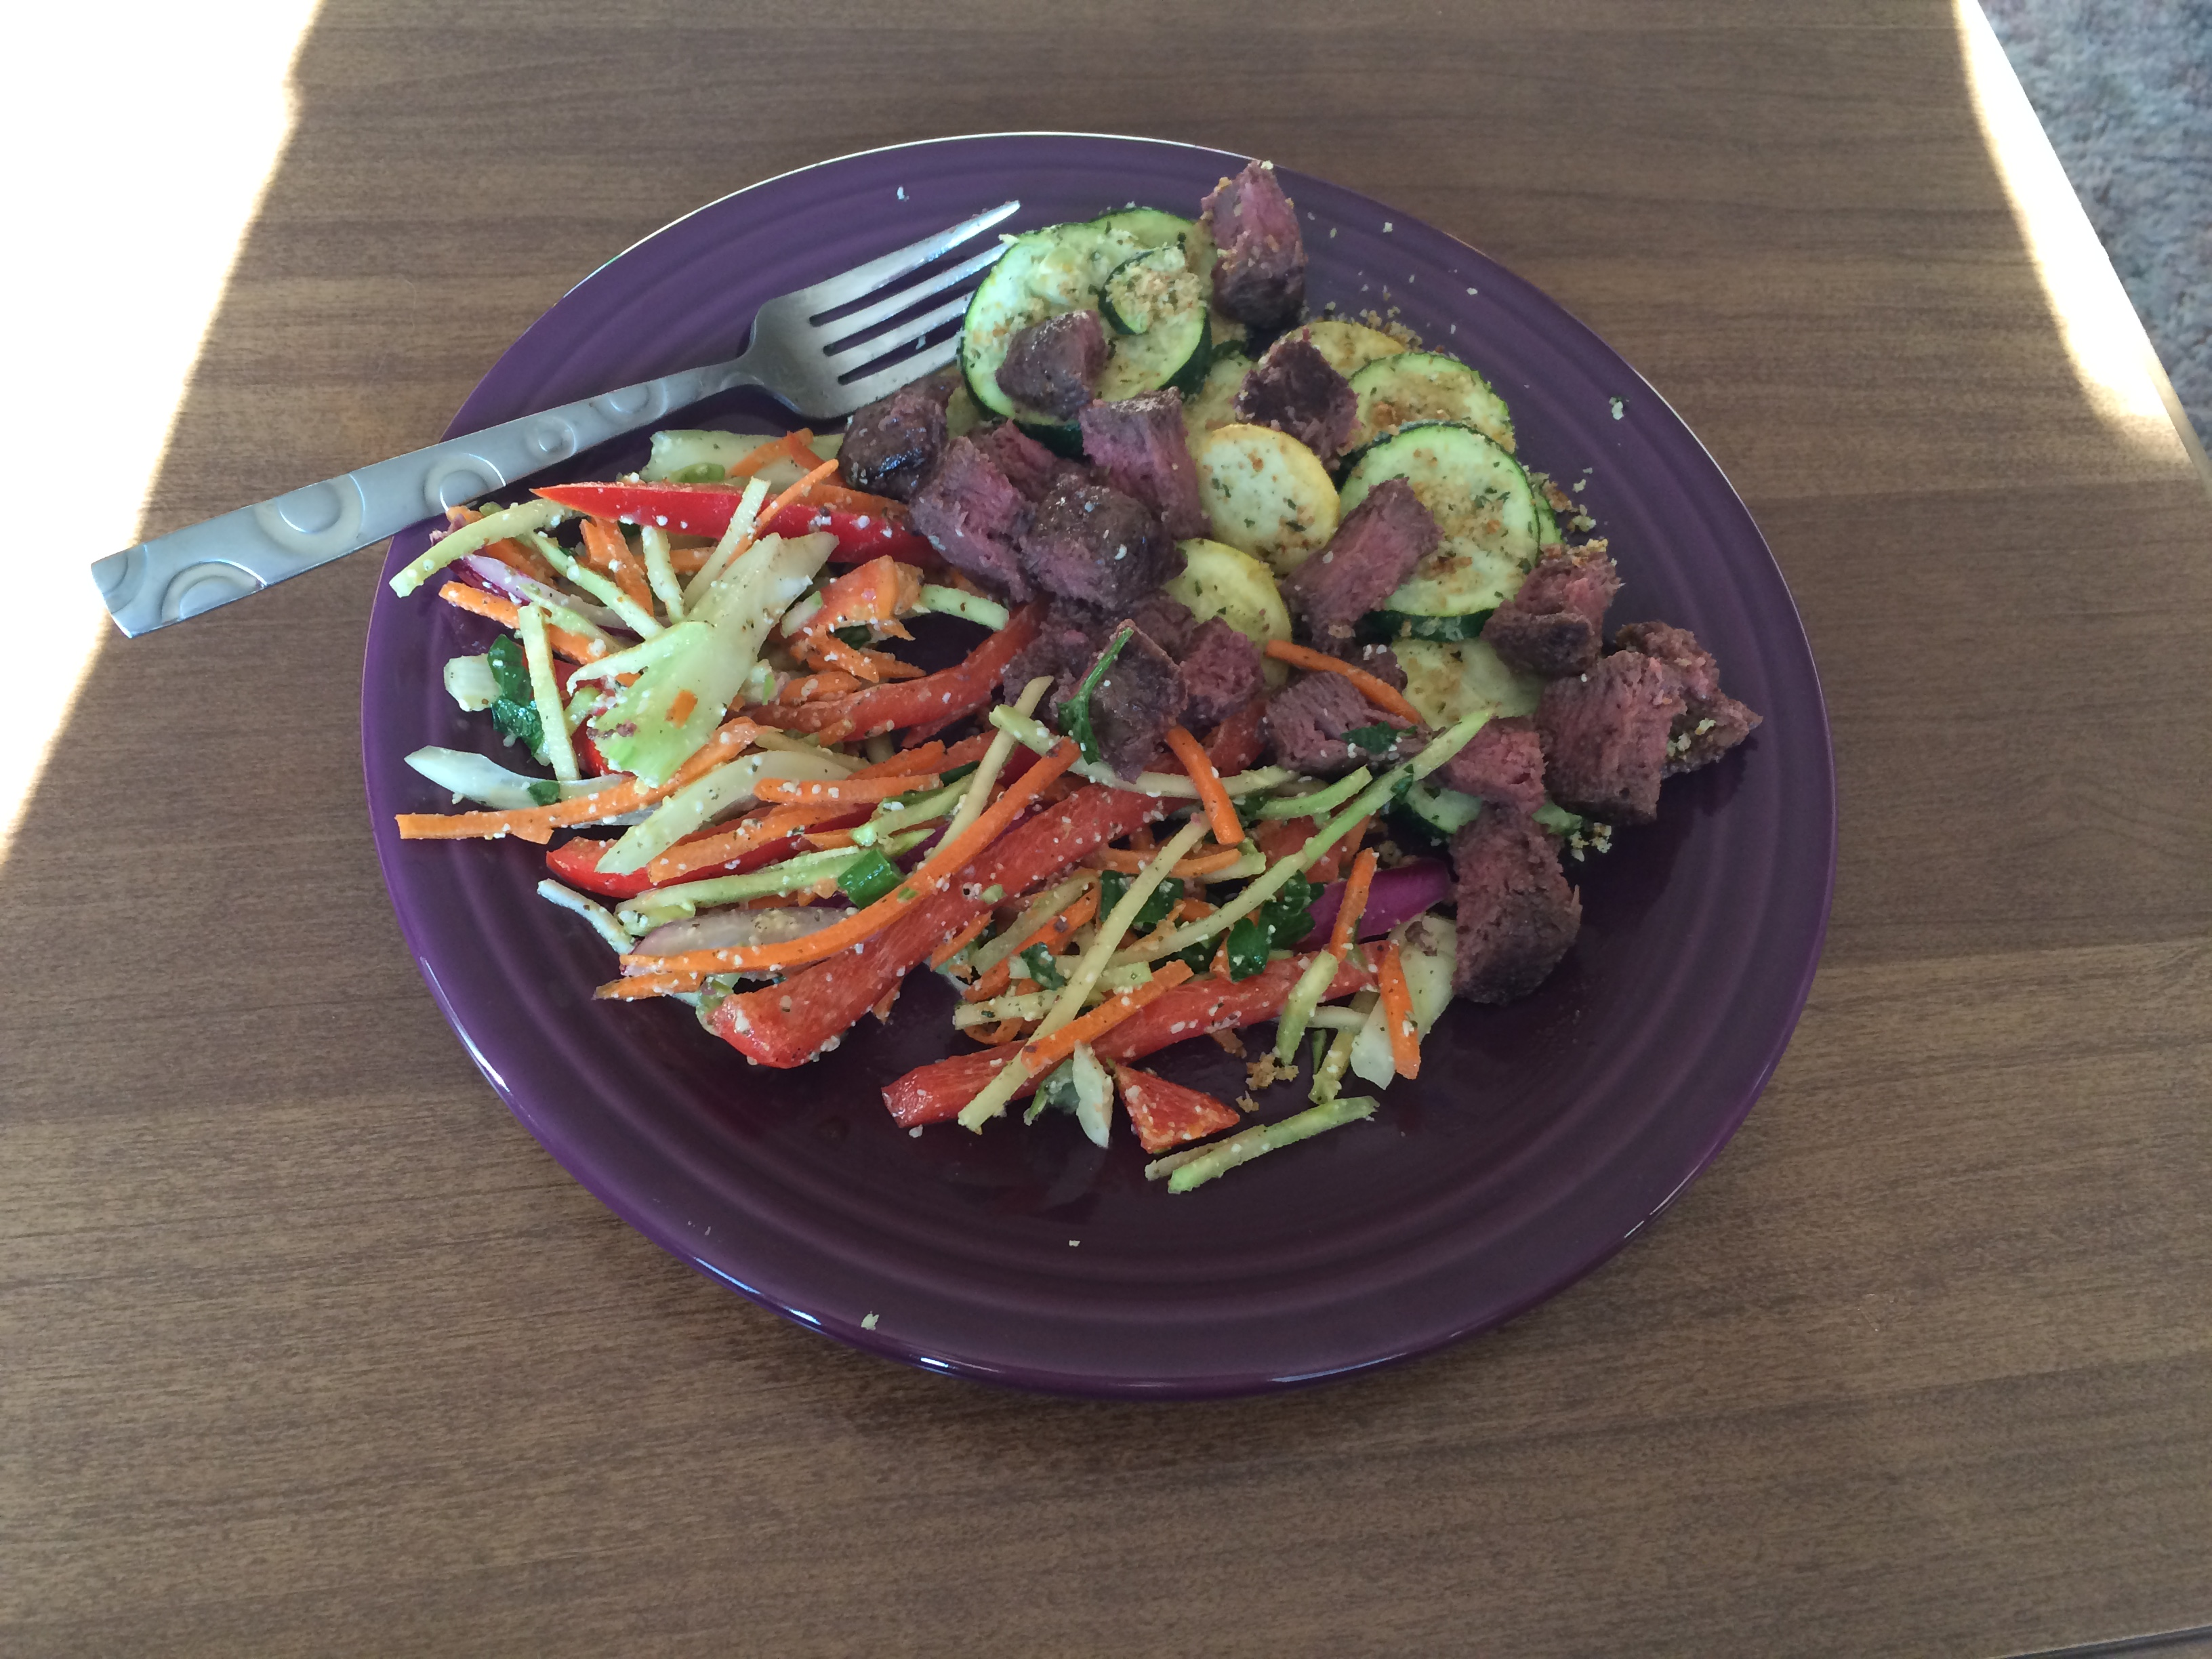 My Honest Review of Green Chef Meal Delivery Service